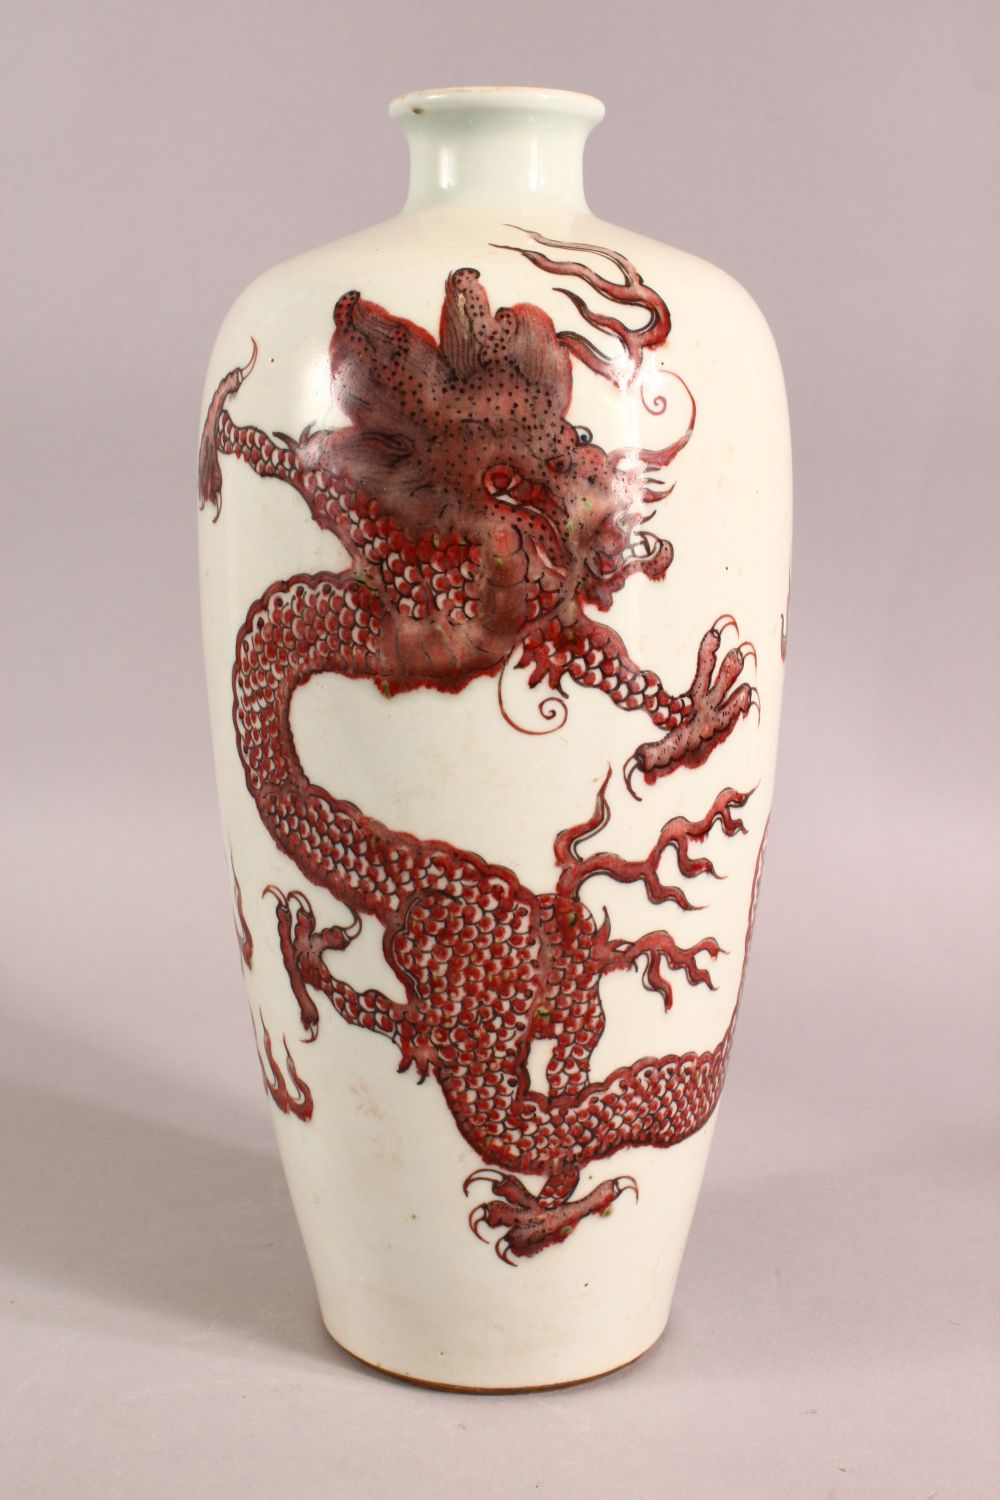 A CHINESE IRON RED DRAGON VASE, the body painted with two dragons and the pearl of wisdom, 33cm - Image 3 of 6